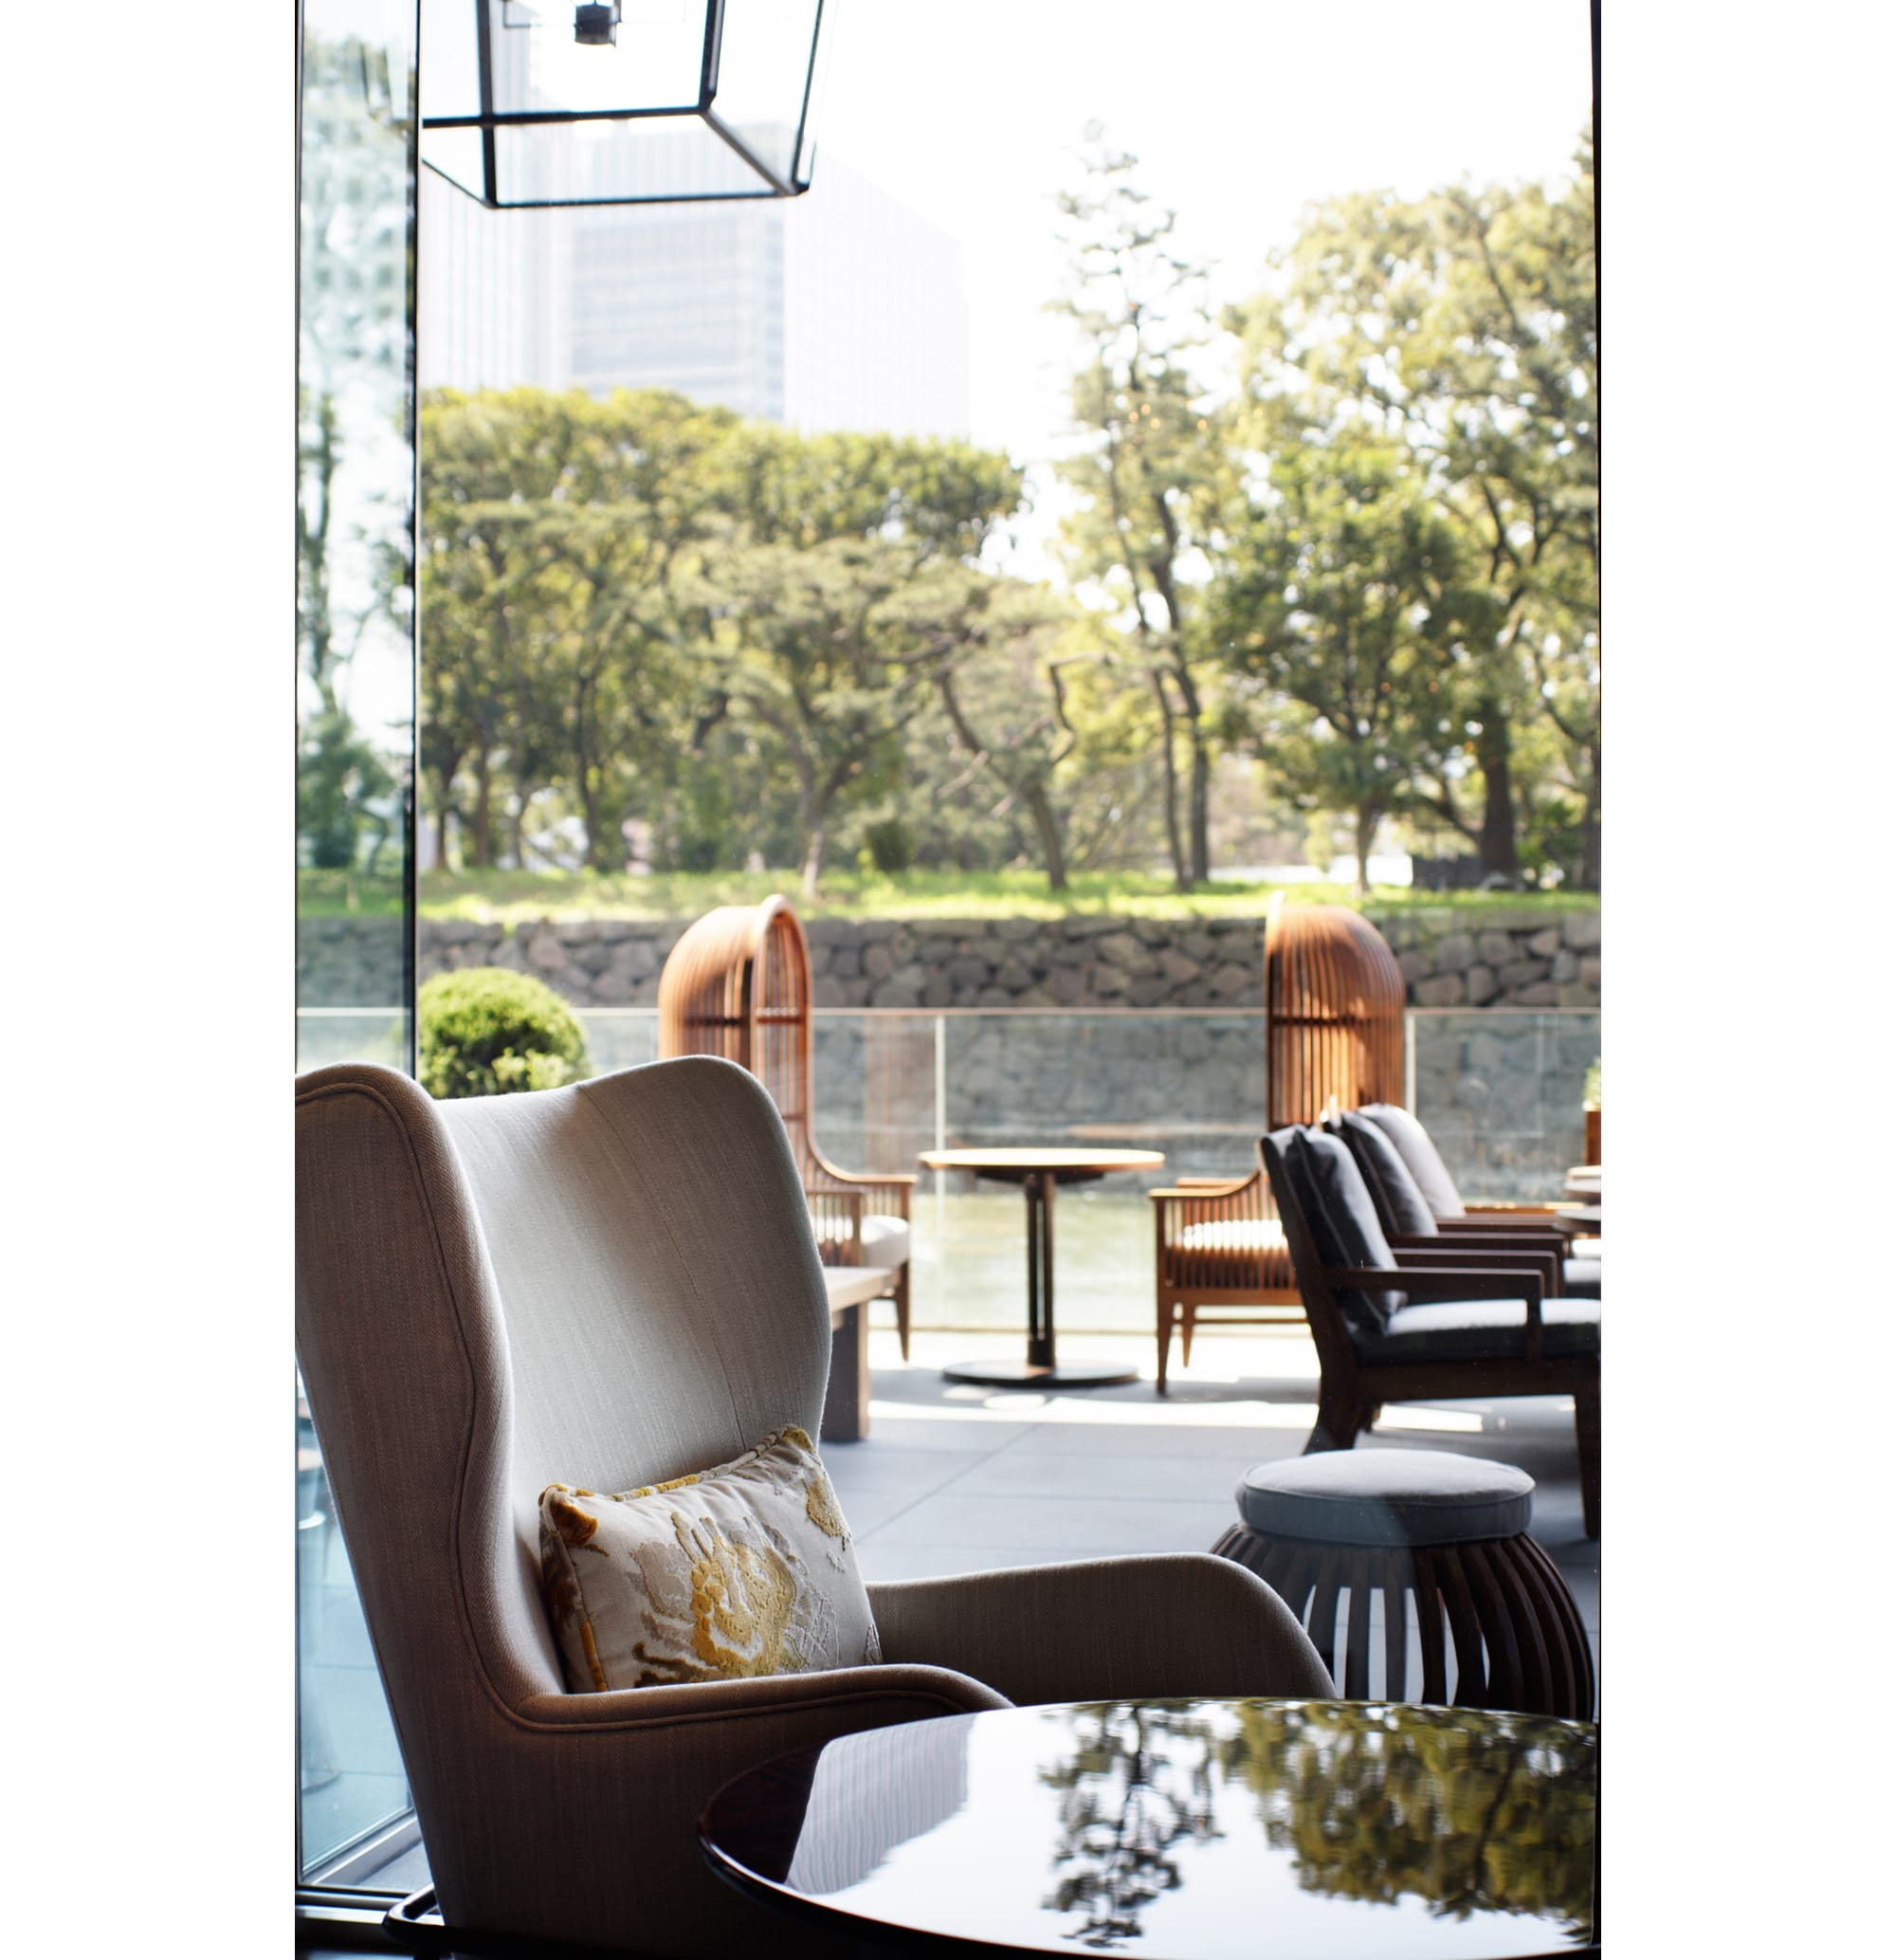 Guests can relax as if they are at their own home living room at The Palace Lounge. The beautiful view of water and trees around the Imperial Palace moats can be enjoyed from the hotel windows.